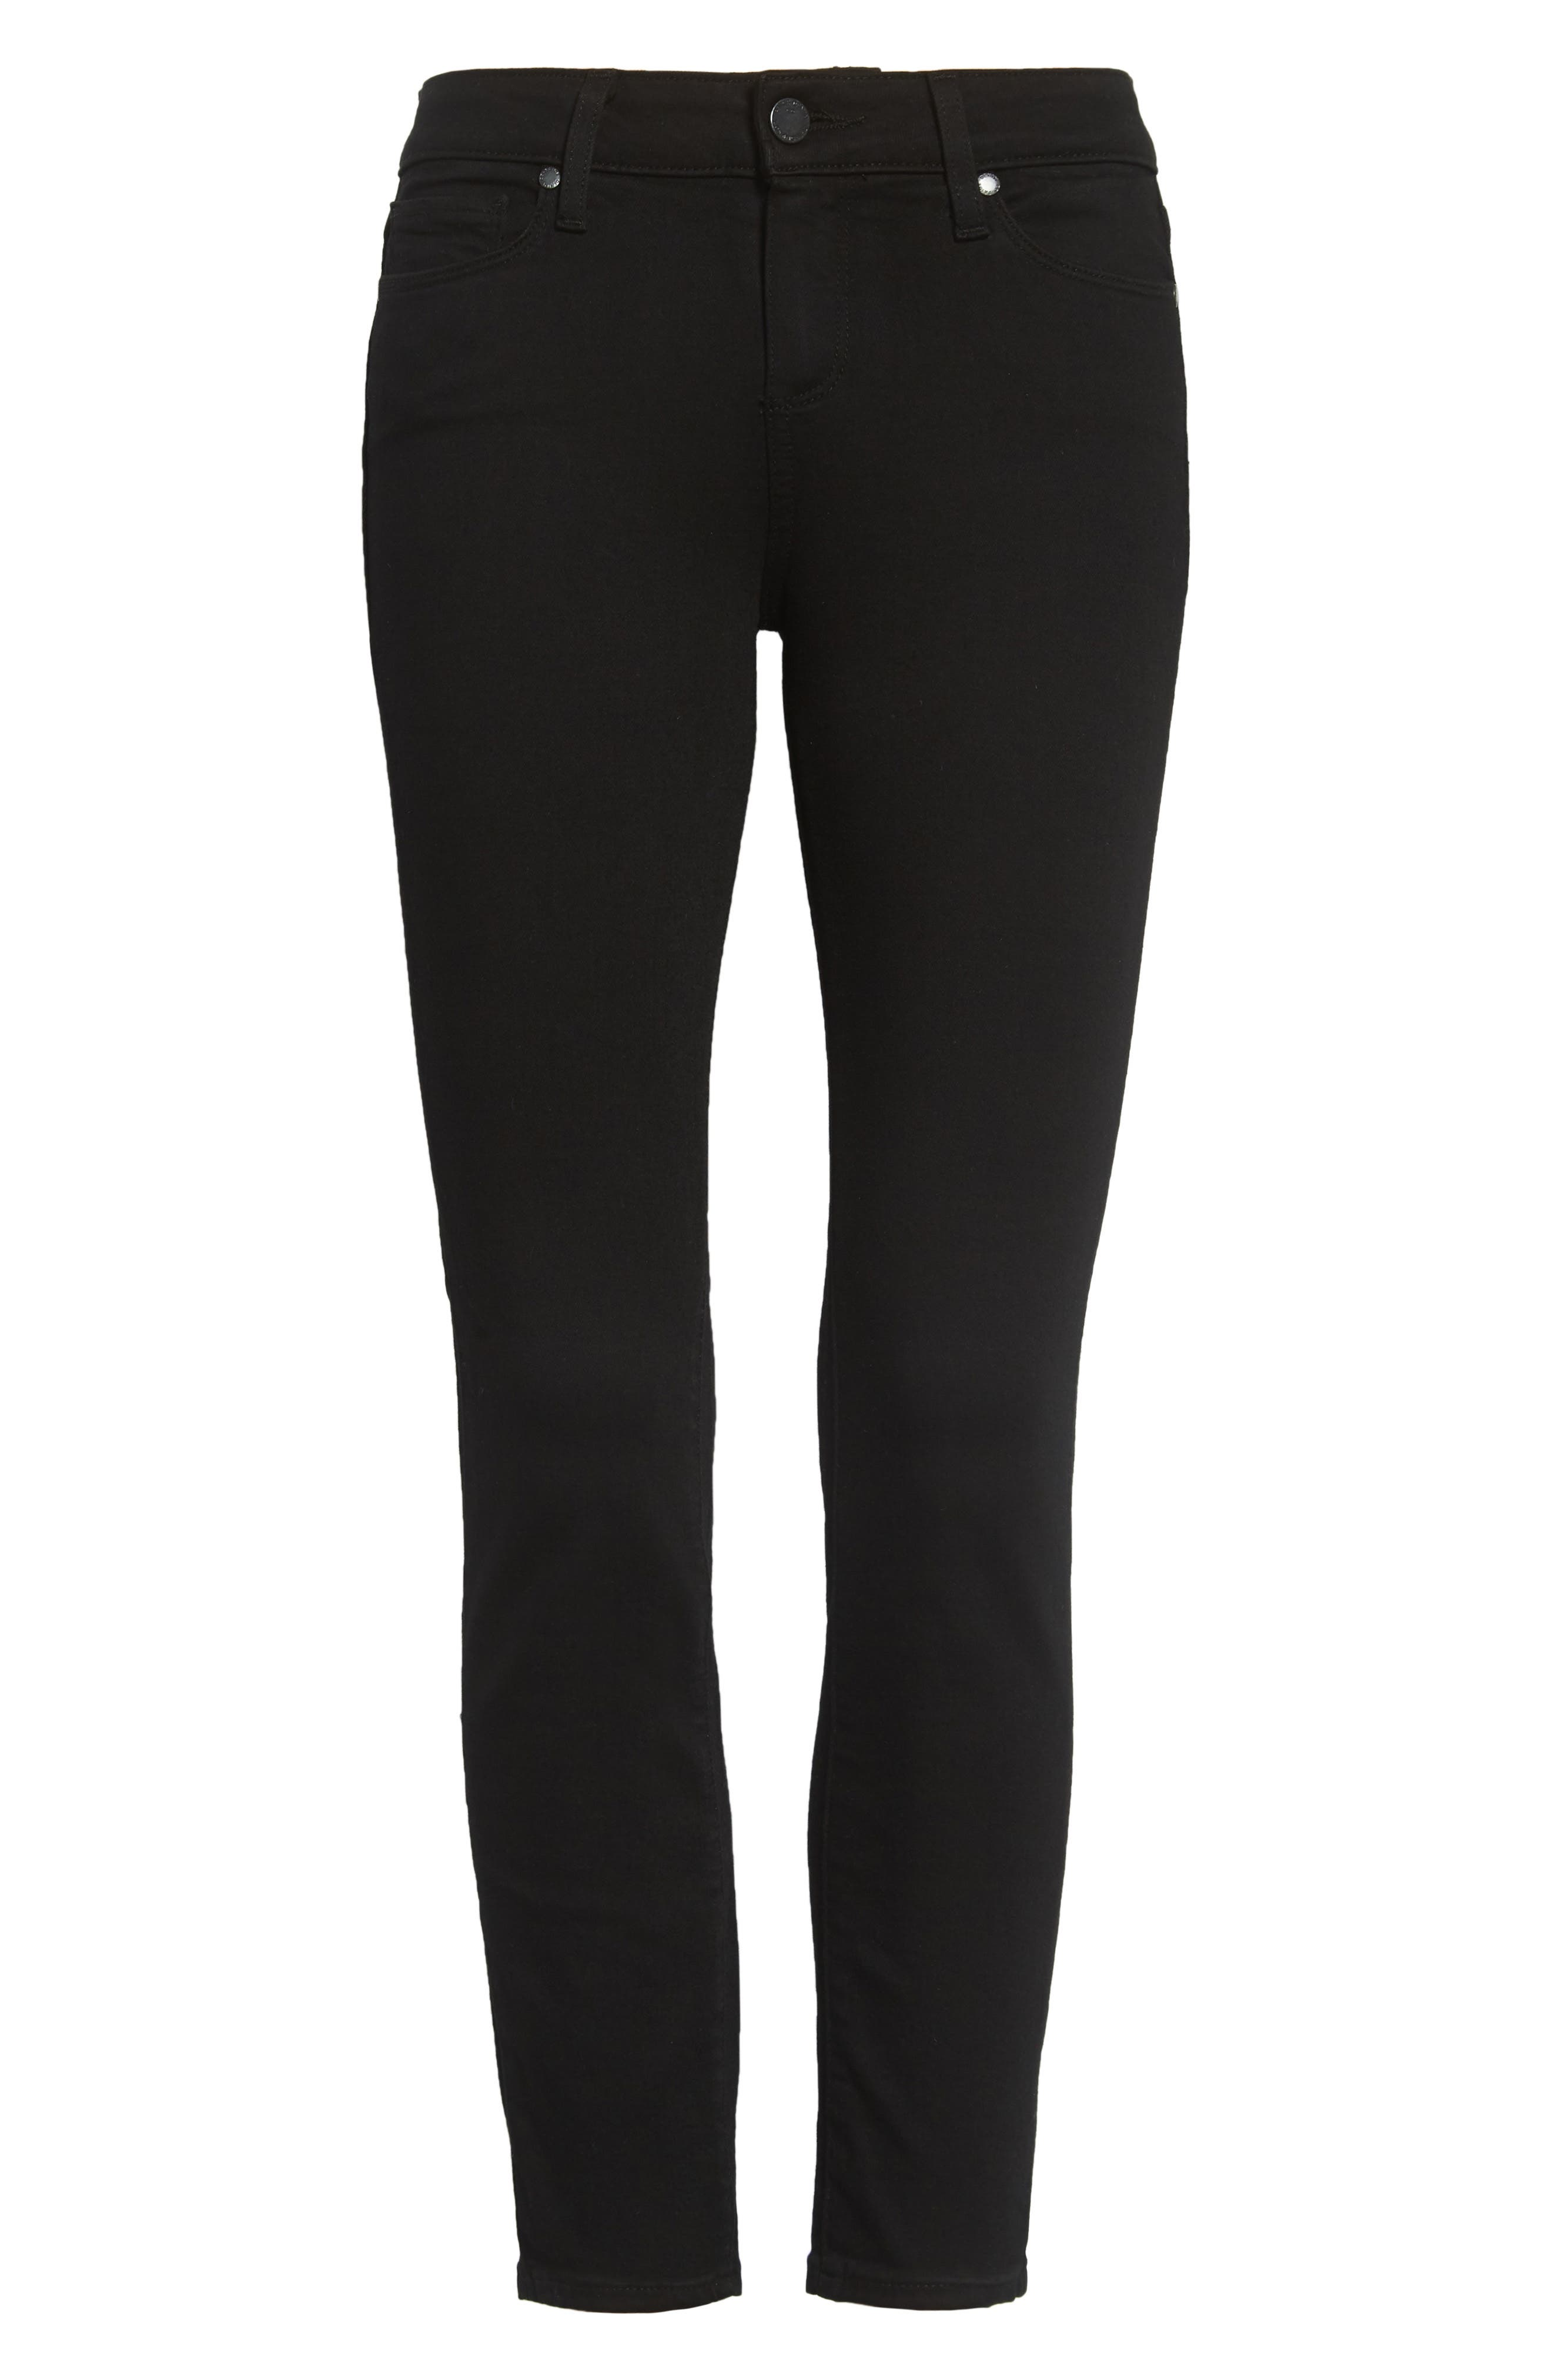 Transcend - Verdugo Crop Skinny Jeans,                             Alternate thumbnail 3, color,                             BLACK